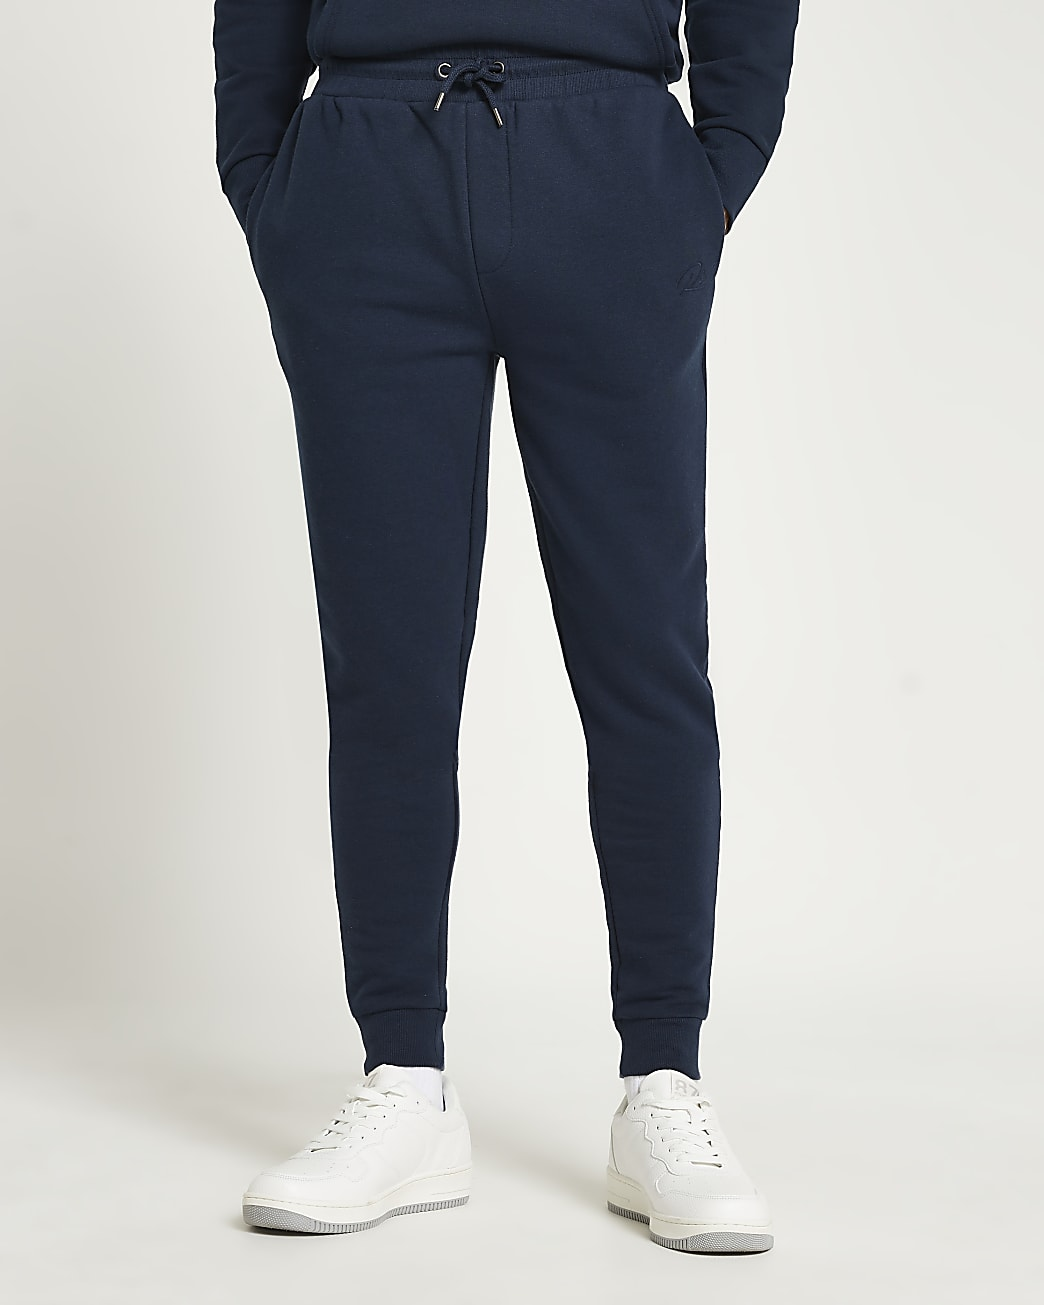 Navy RI muscle fit joggers